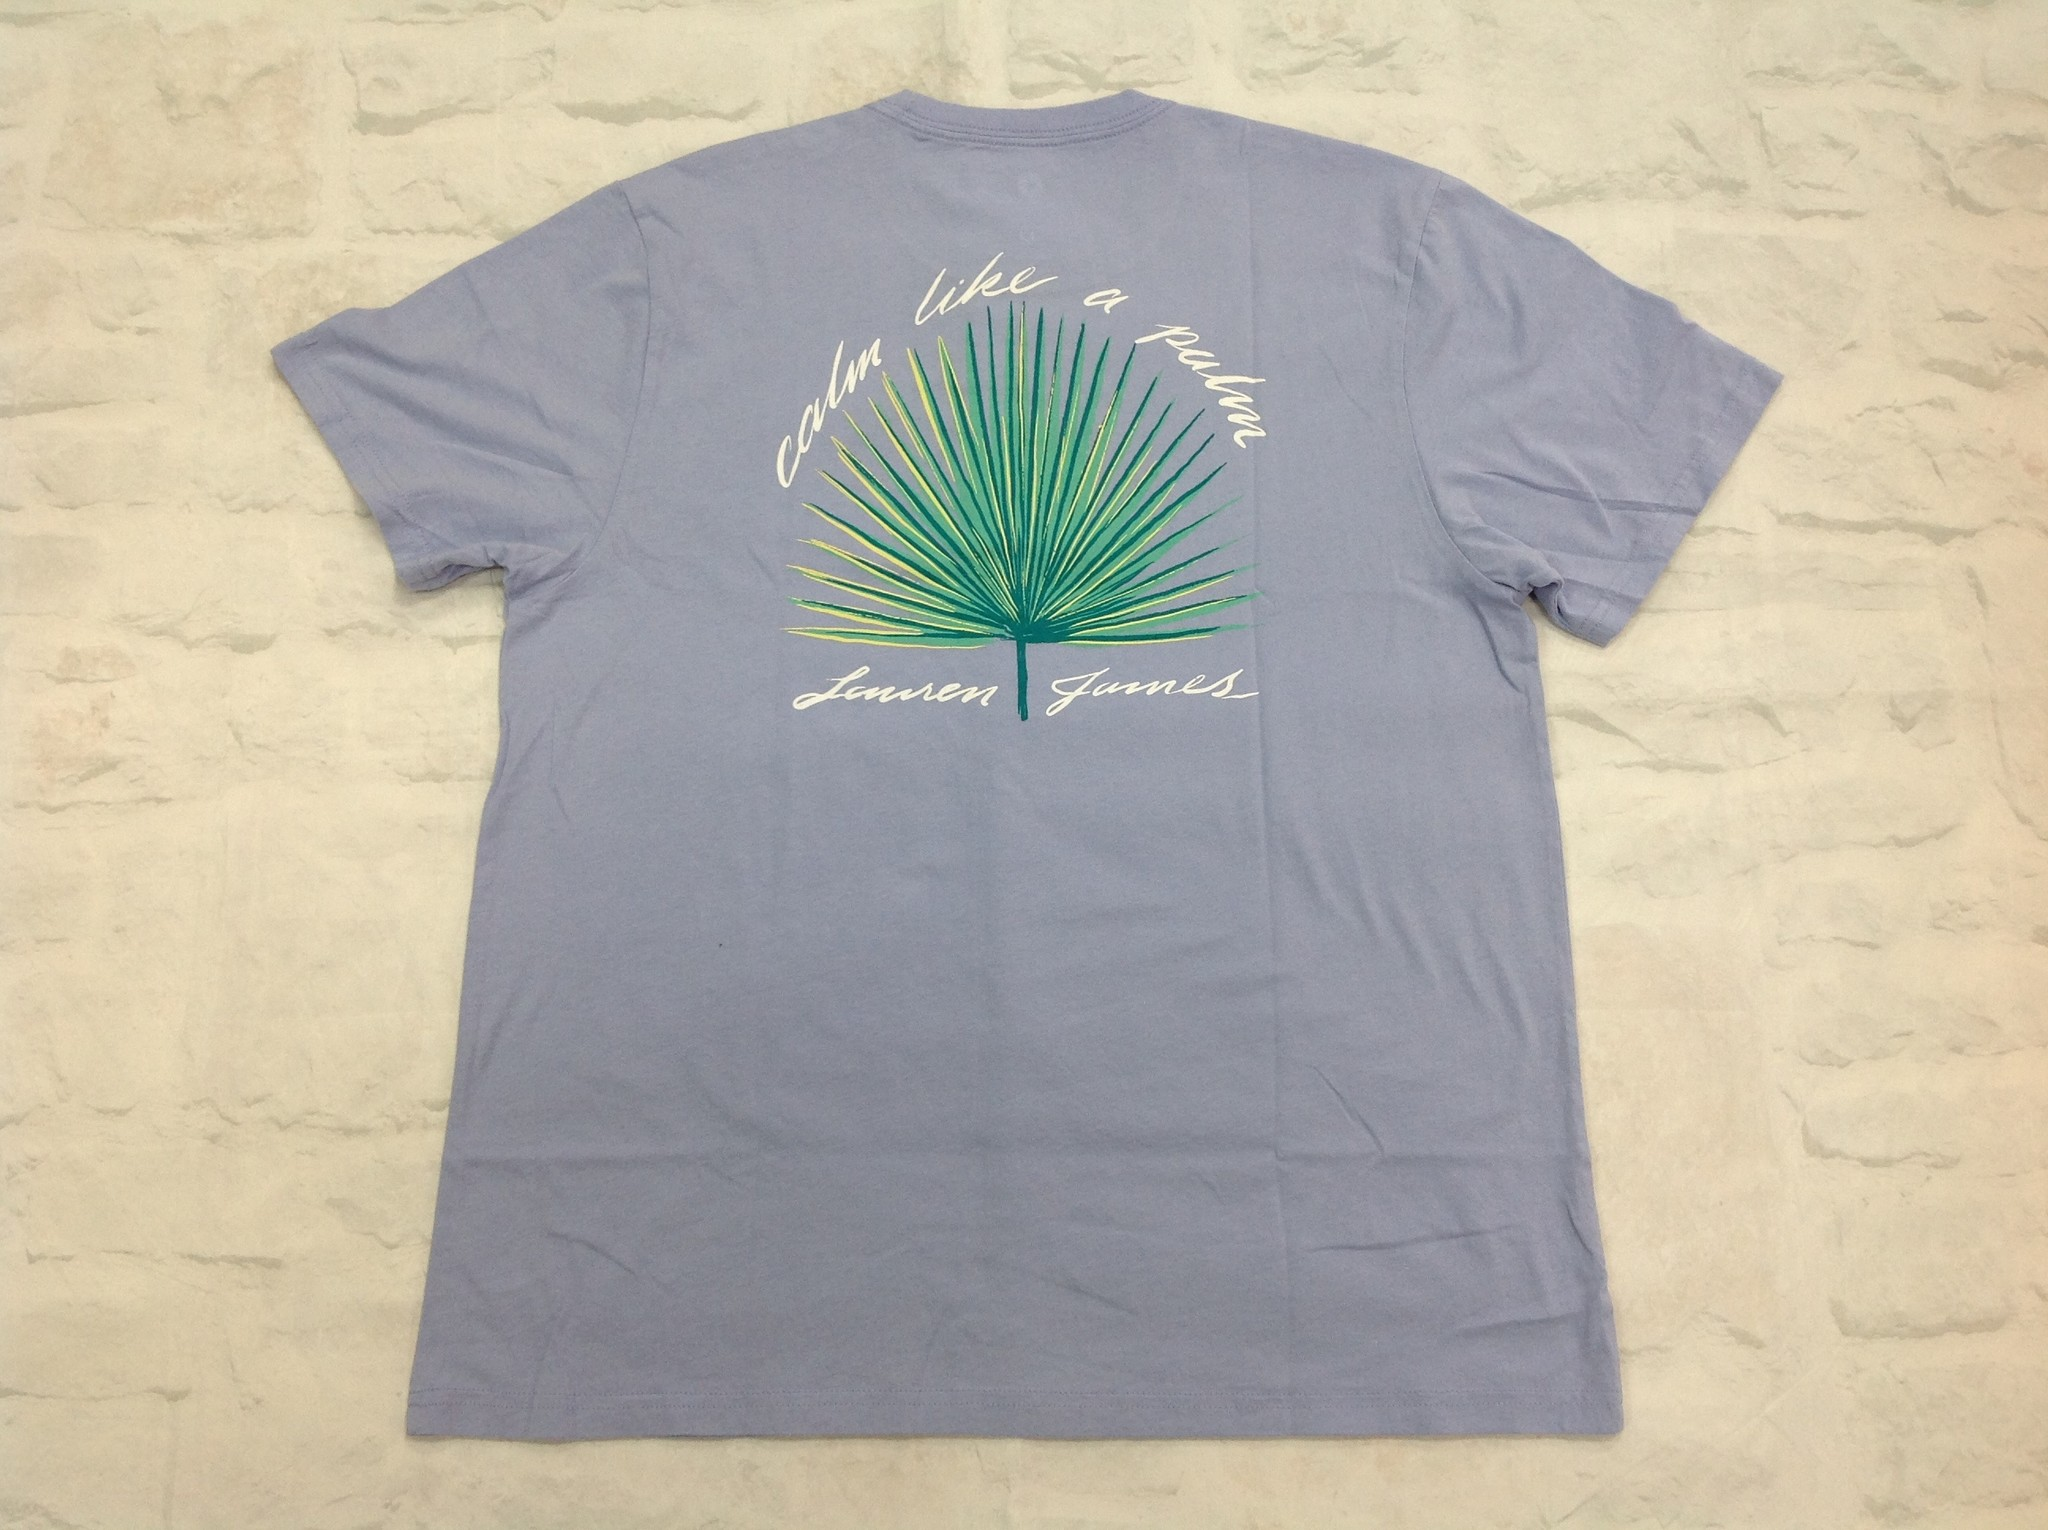 Lauren James Calm Like A Palm T-shirt